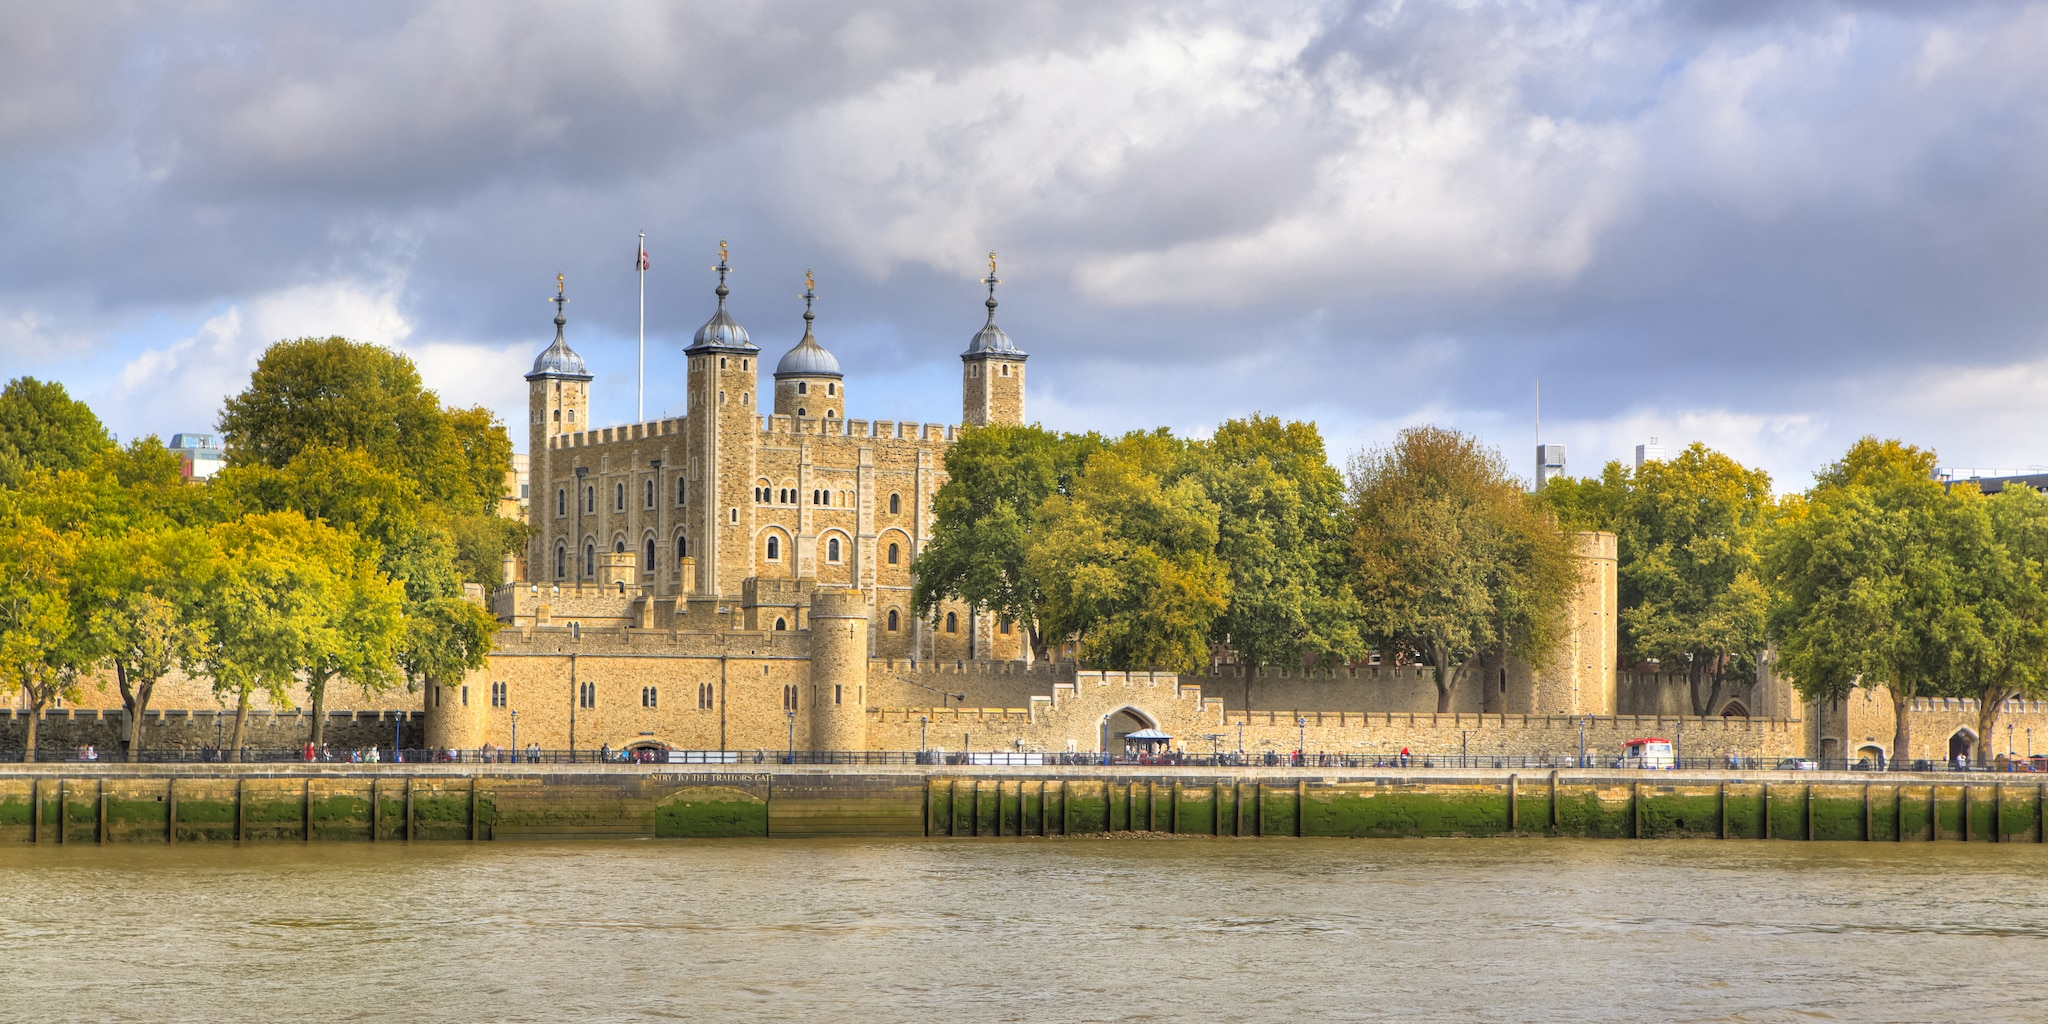 The Tower of London waterfront